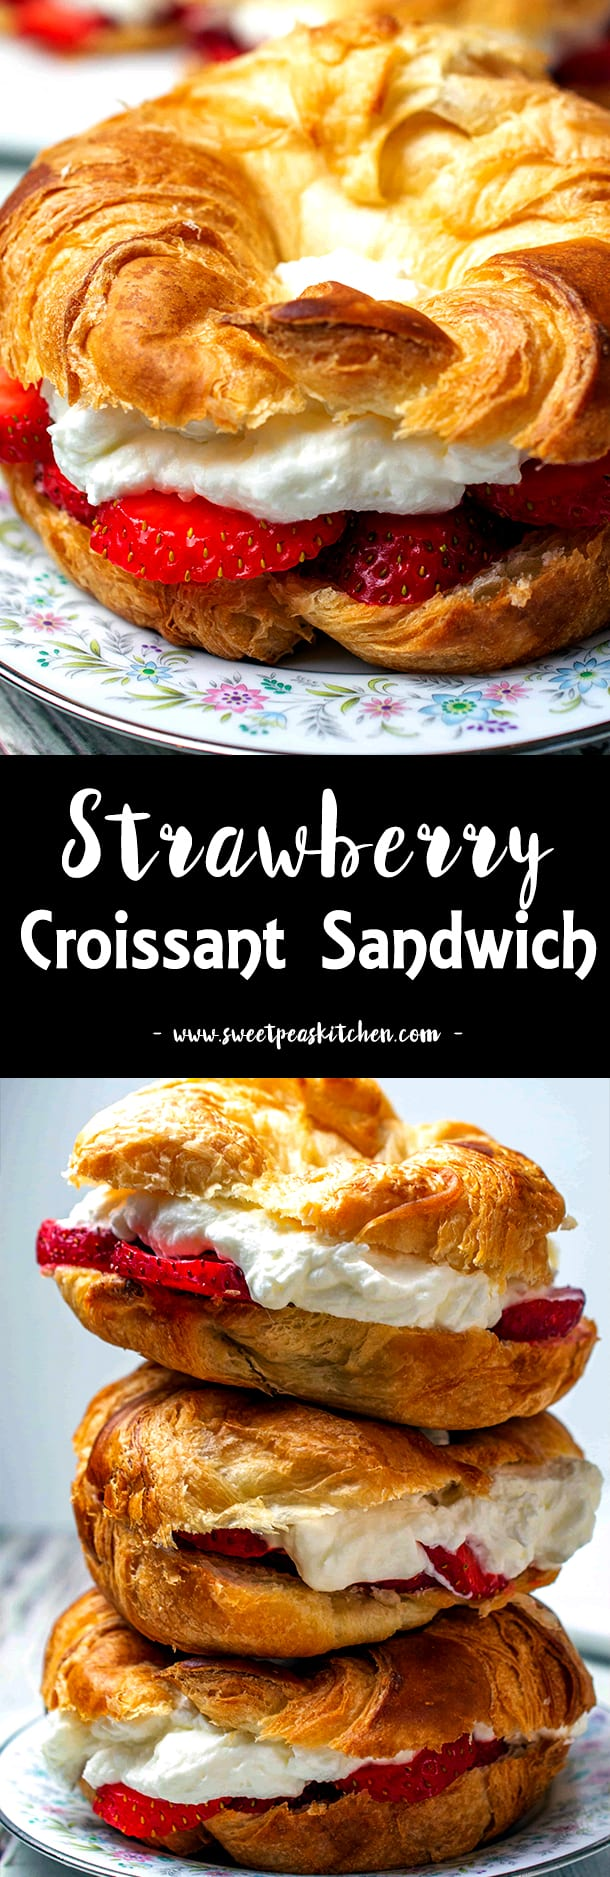 Strawberry Almond Whipped Cream Filled Croissants